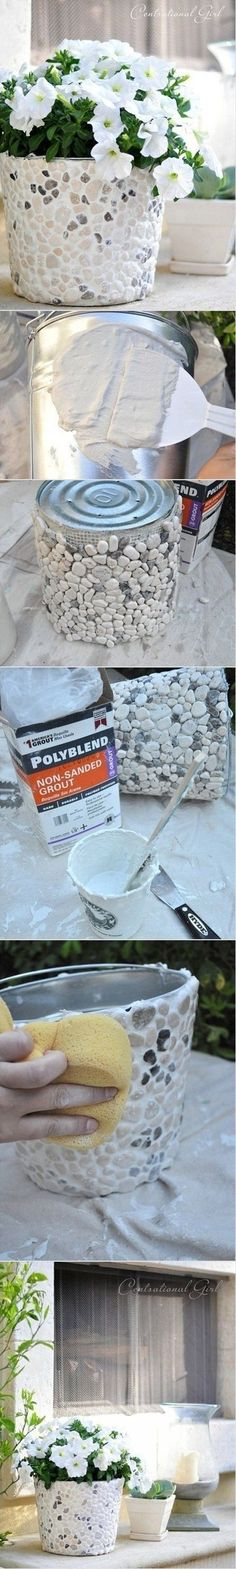 Pebble Planter Cover a bucket in grout and pebbles to make this professional looking planter.